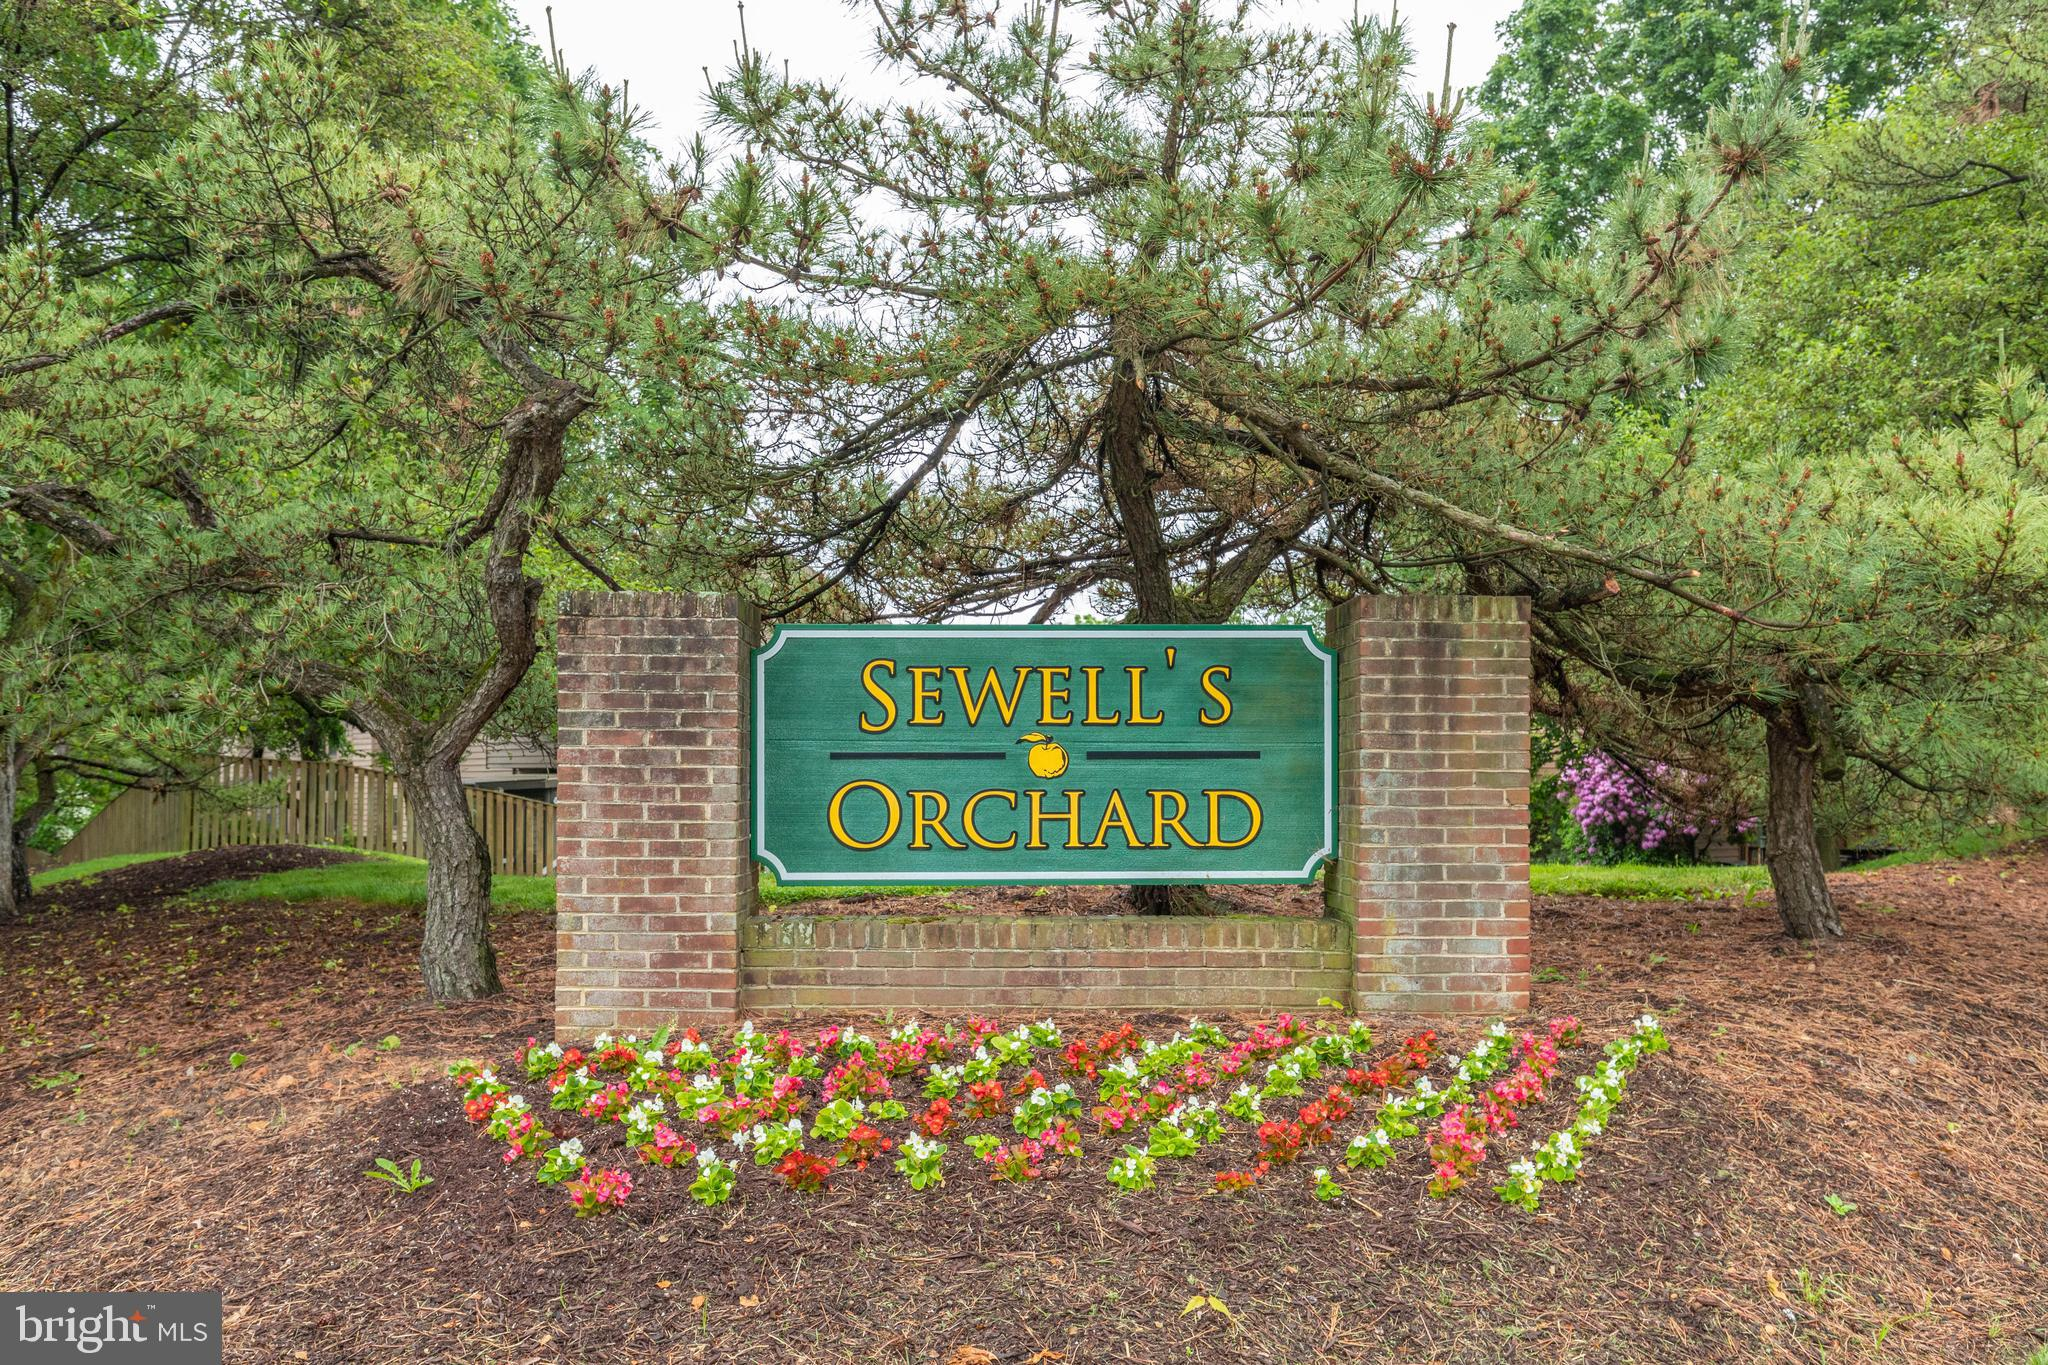 Beautiful 3 Bedroom, 2.5 Bath, 1 car garage Townhome located at the back of a cul-de-sac in Sewells